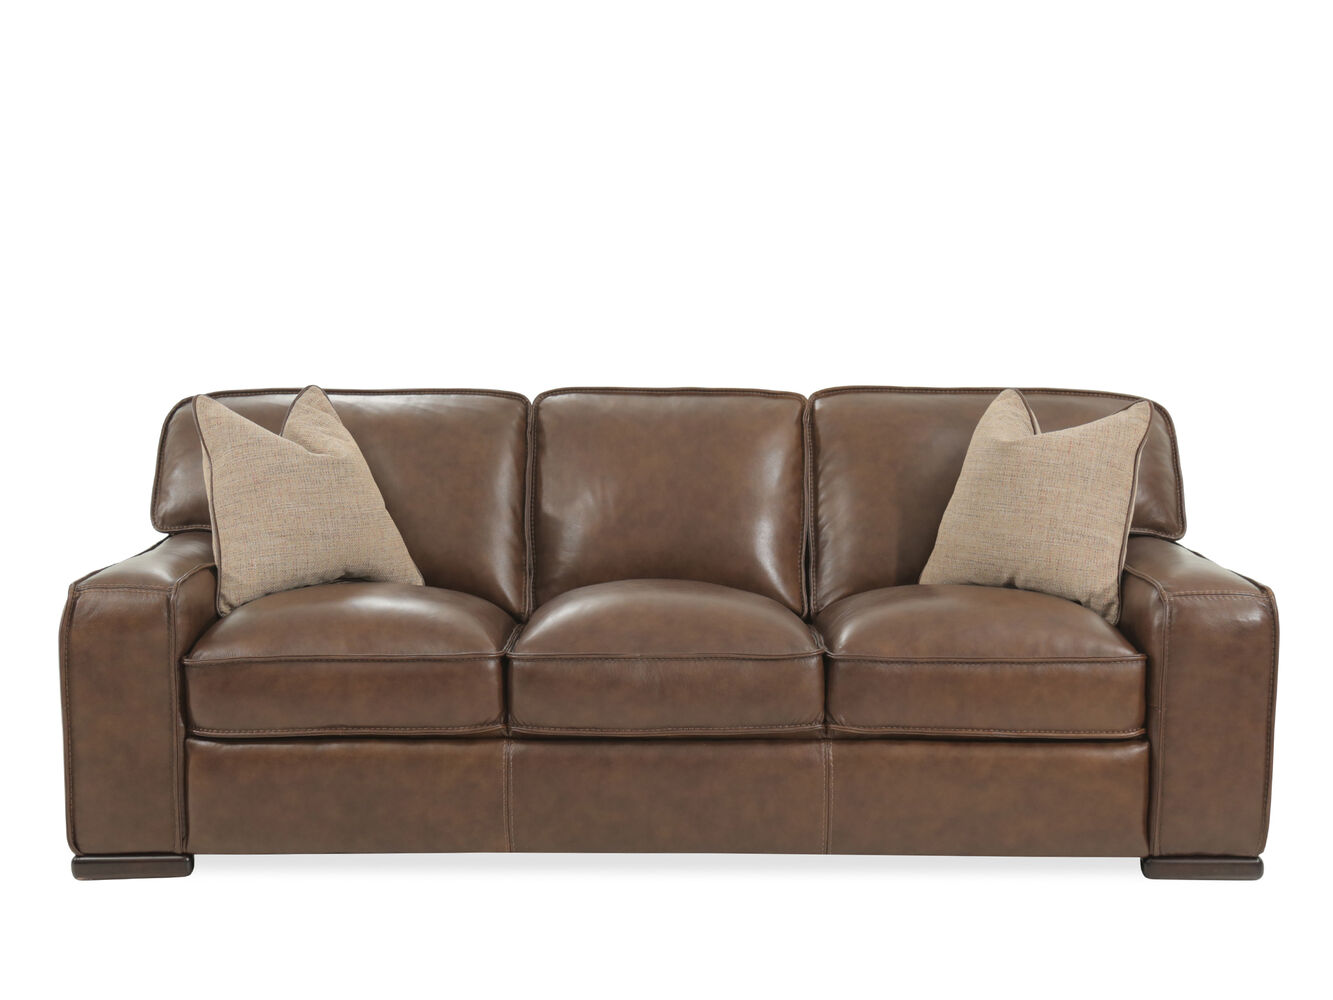 Traditional 93 leather sofa in brown mathis brothers for Traditional leather sofas furniture